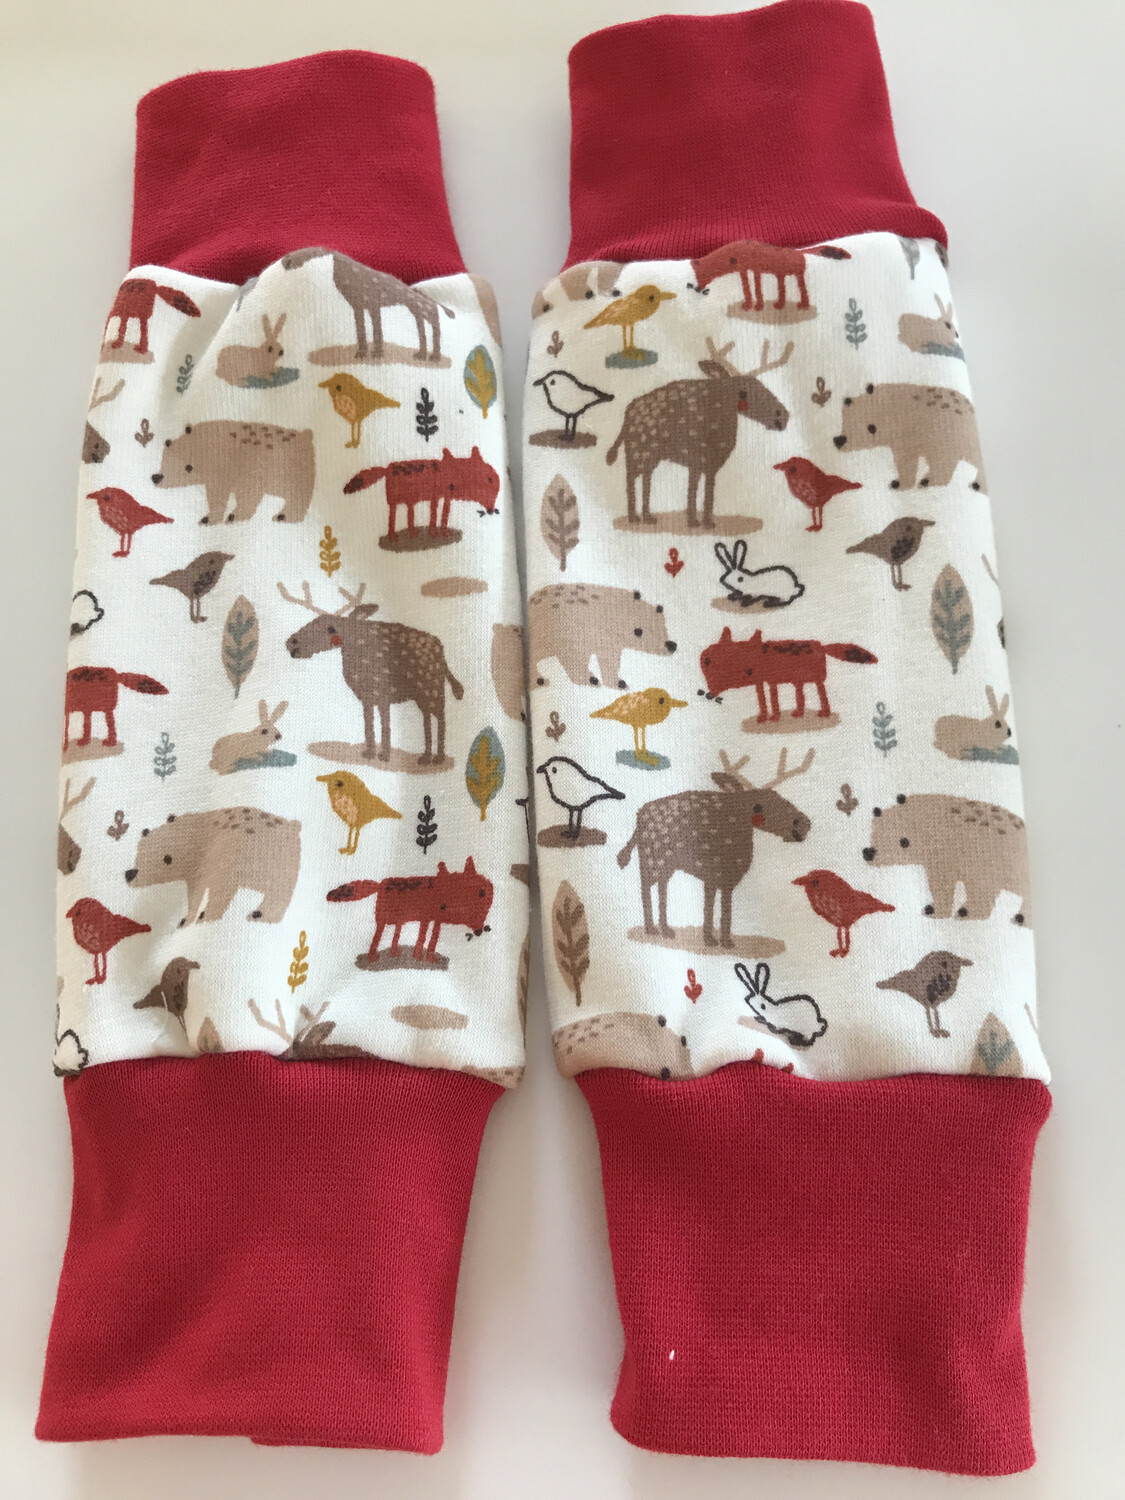 Bear & Moose Alpine Fleece Leg Warmers - alternative cuffs available